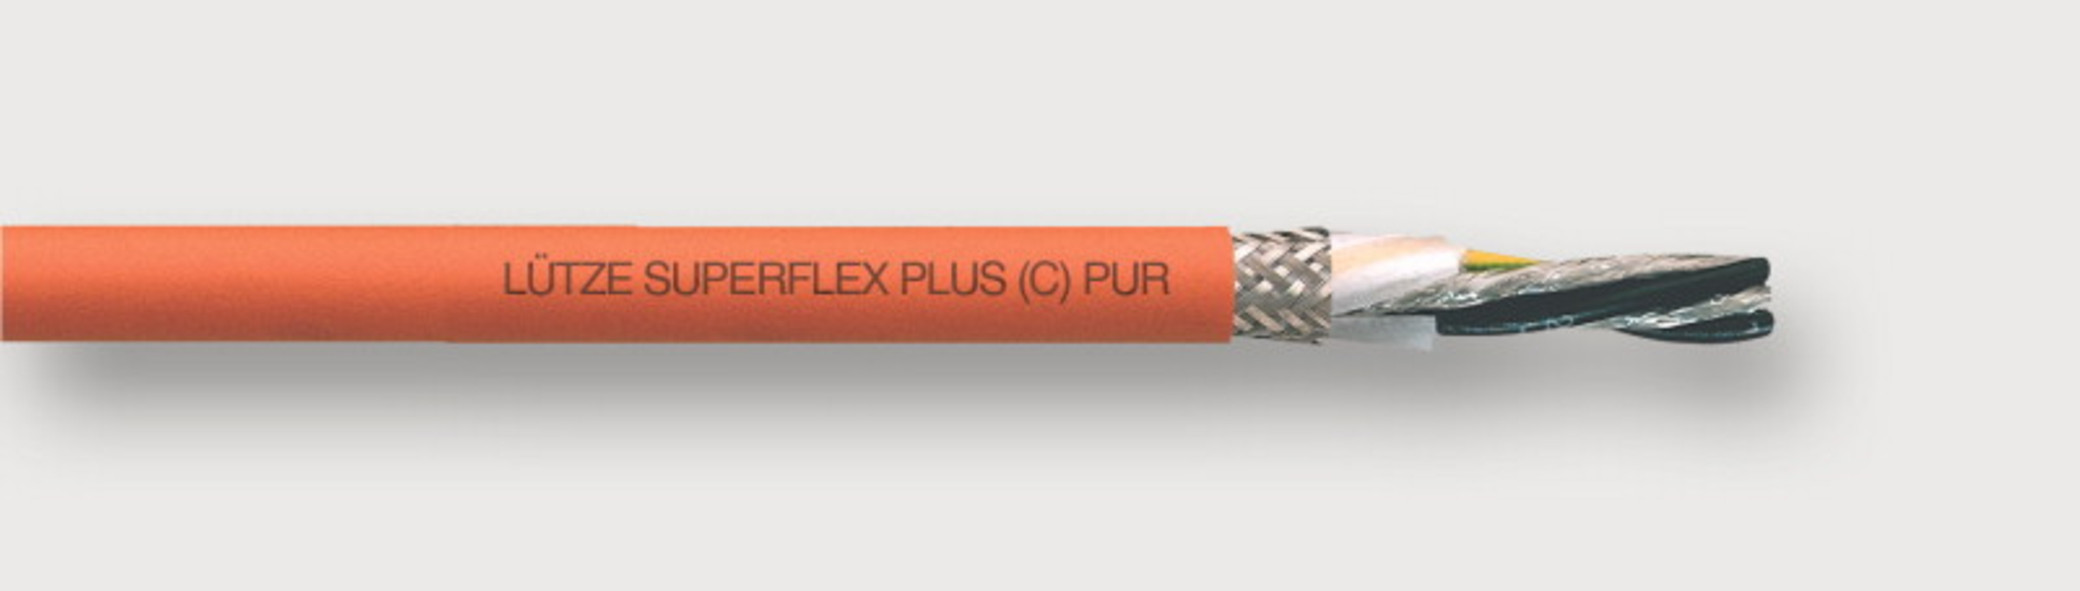 111276 - LÜTZE SUPERFLEX® PLUS M (C) PUR SERVO 0.6/1 kV Supply line for Bosch Rexroth and other systems For highest requirements